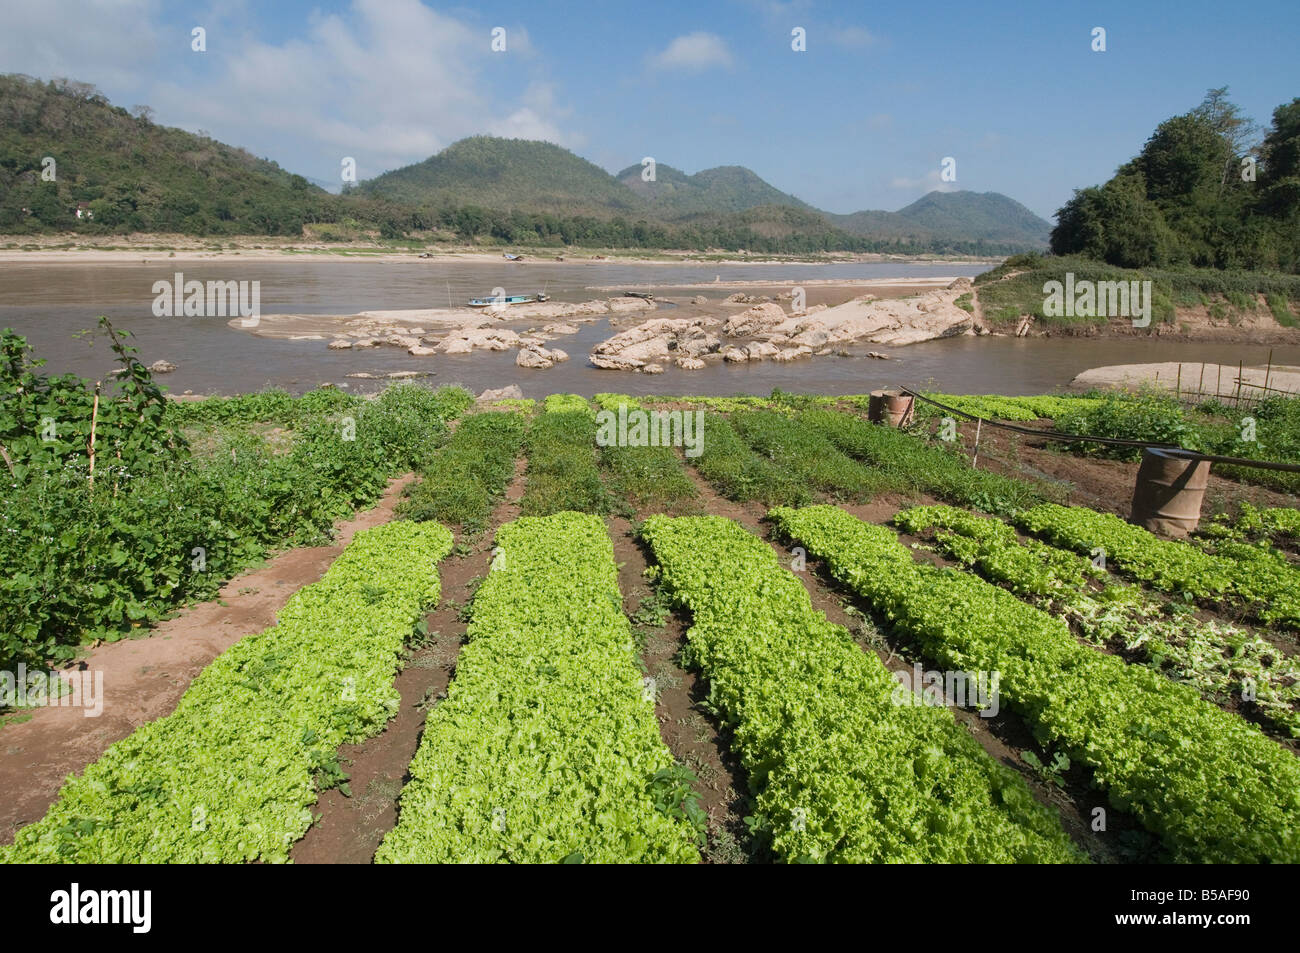 Mekong and Khan Rivers, Luang Prabang, Laos, Indochina, Southeast Asia - Stock Image